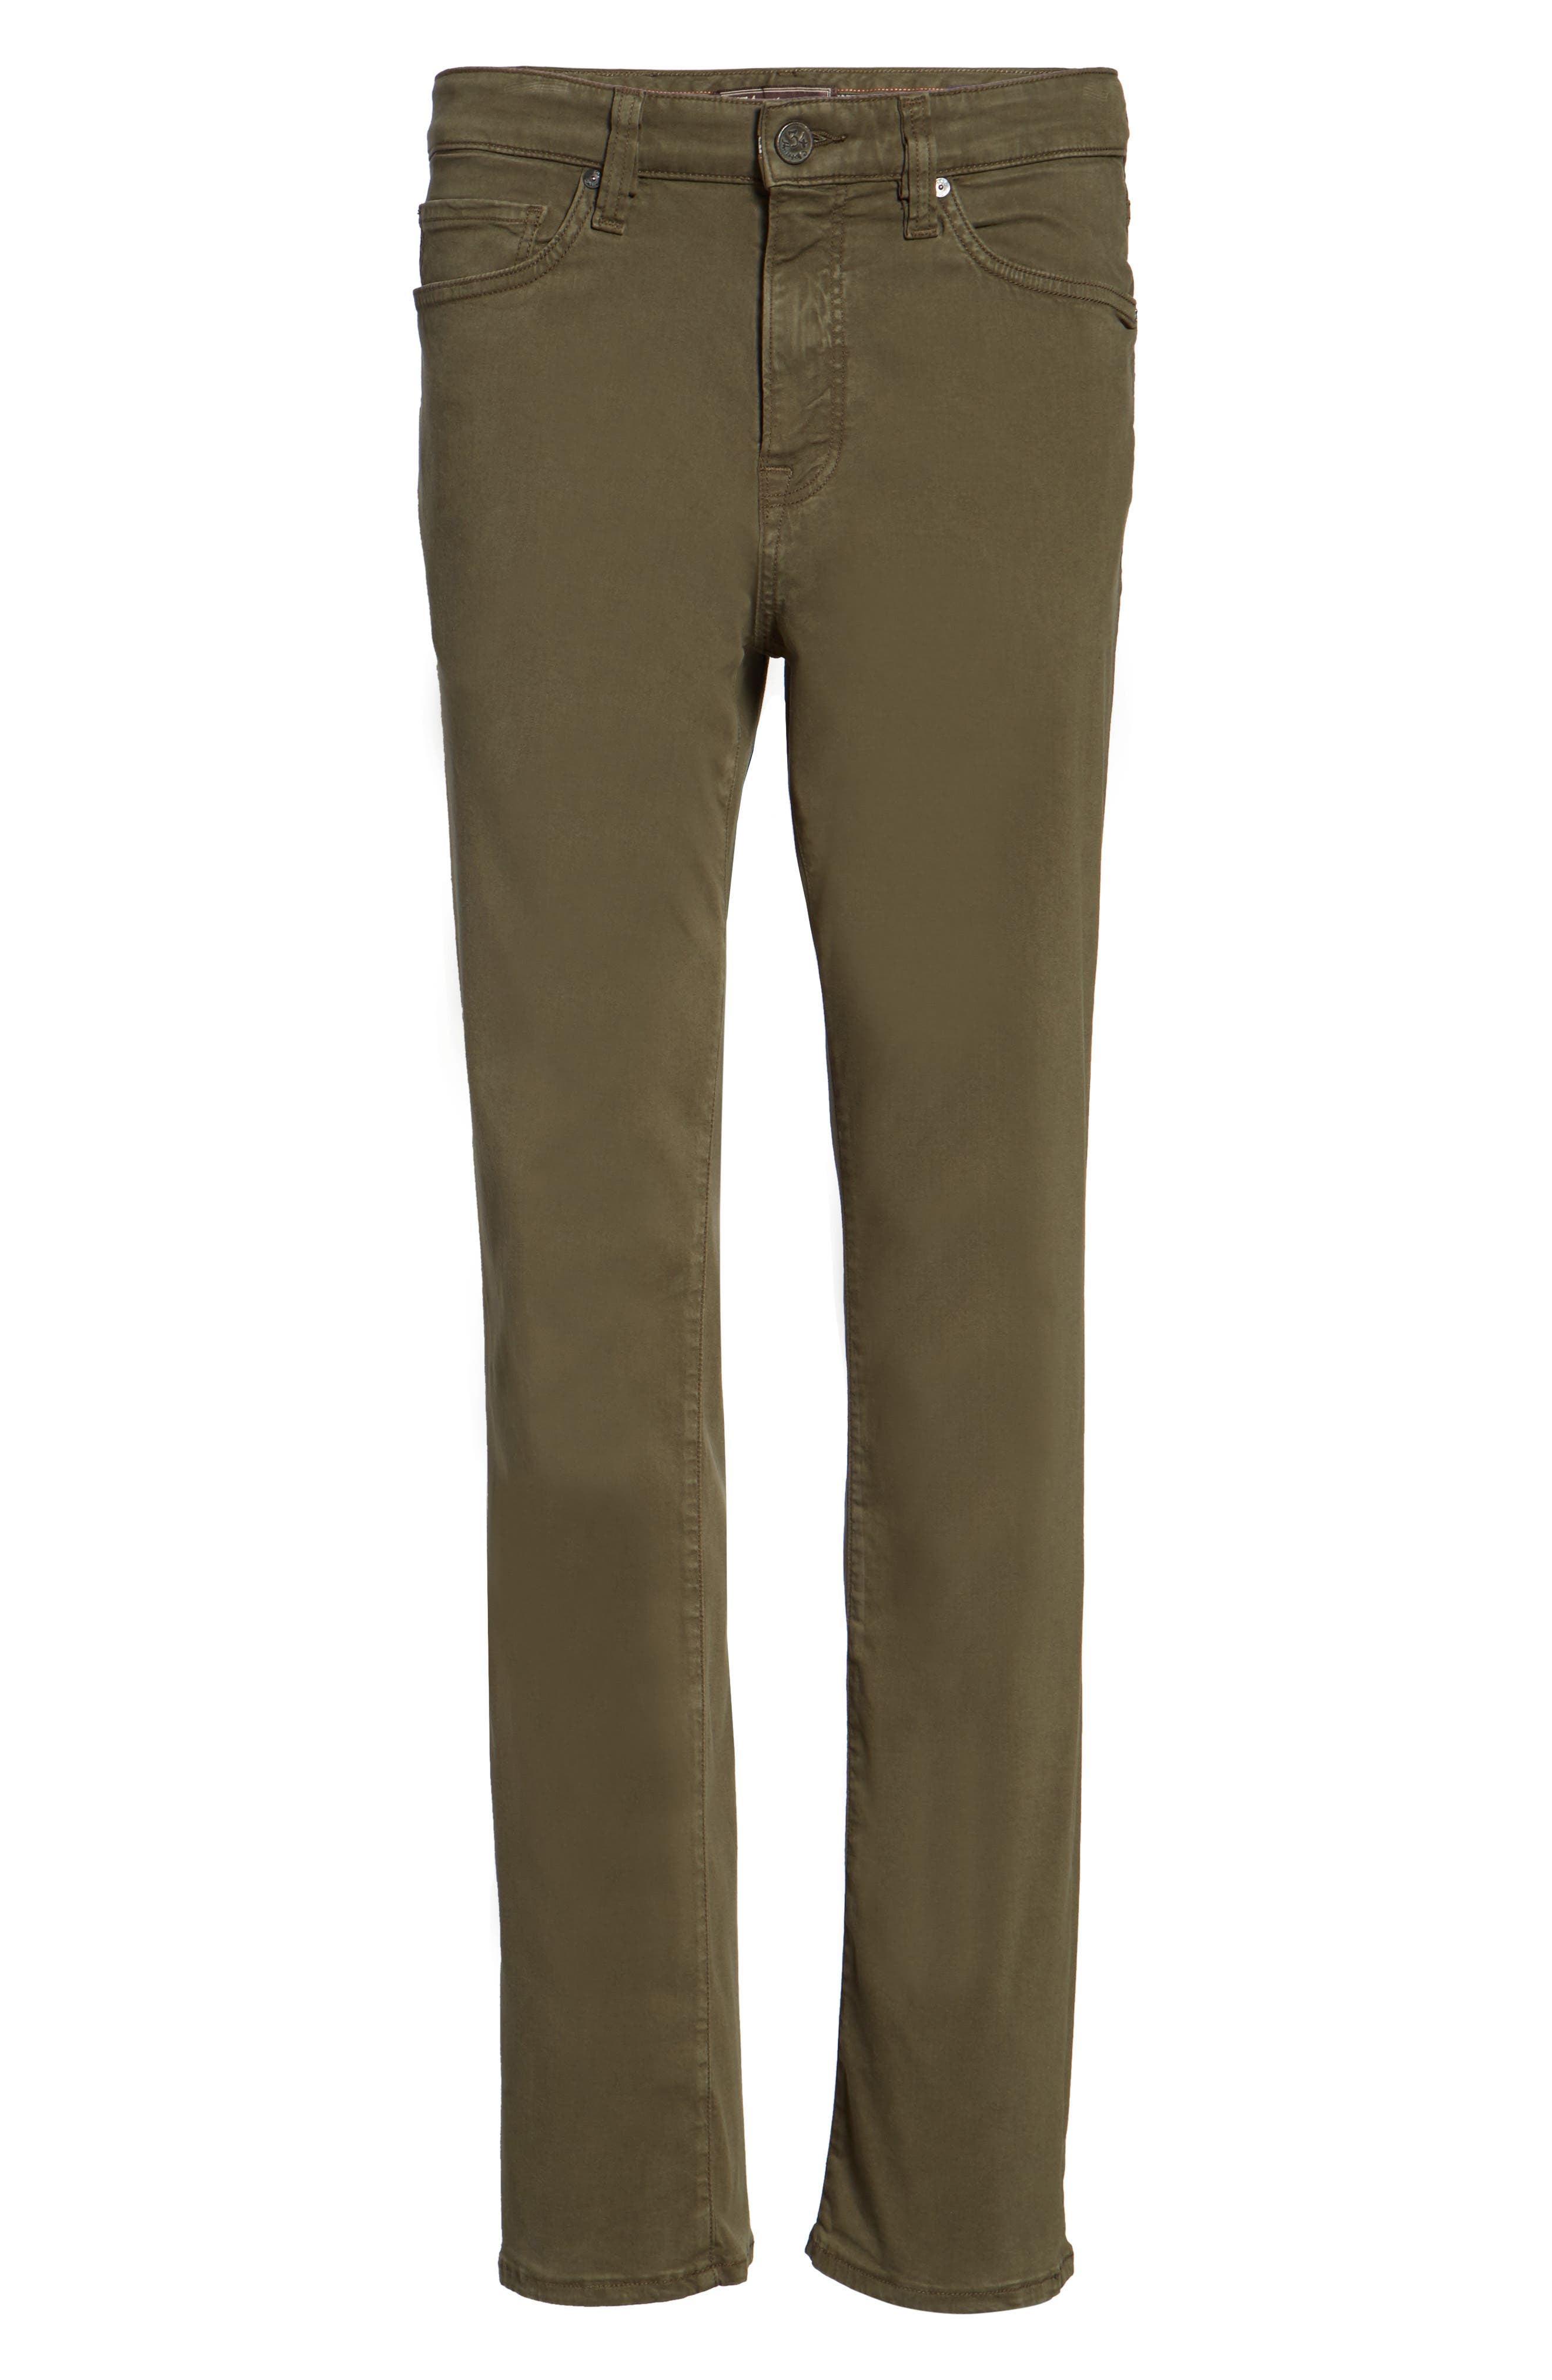 Charisma Relaxed Fit Pants,                             Alternate thumbnail 6, color,                             300